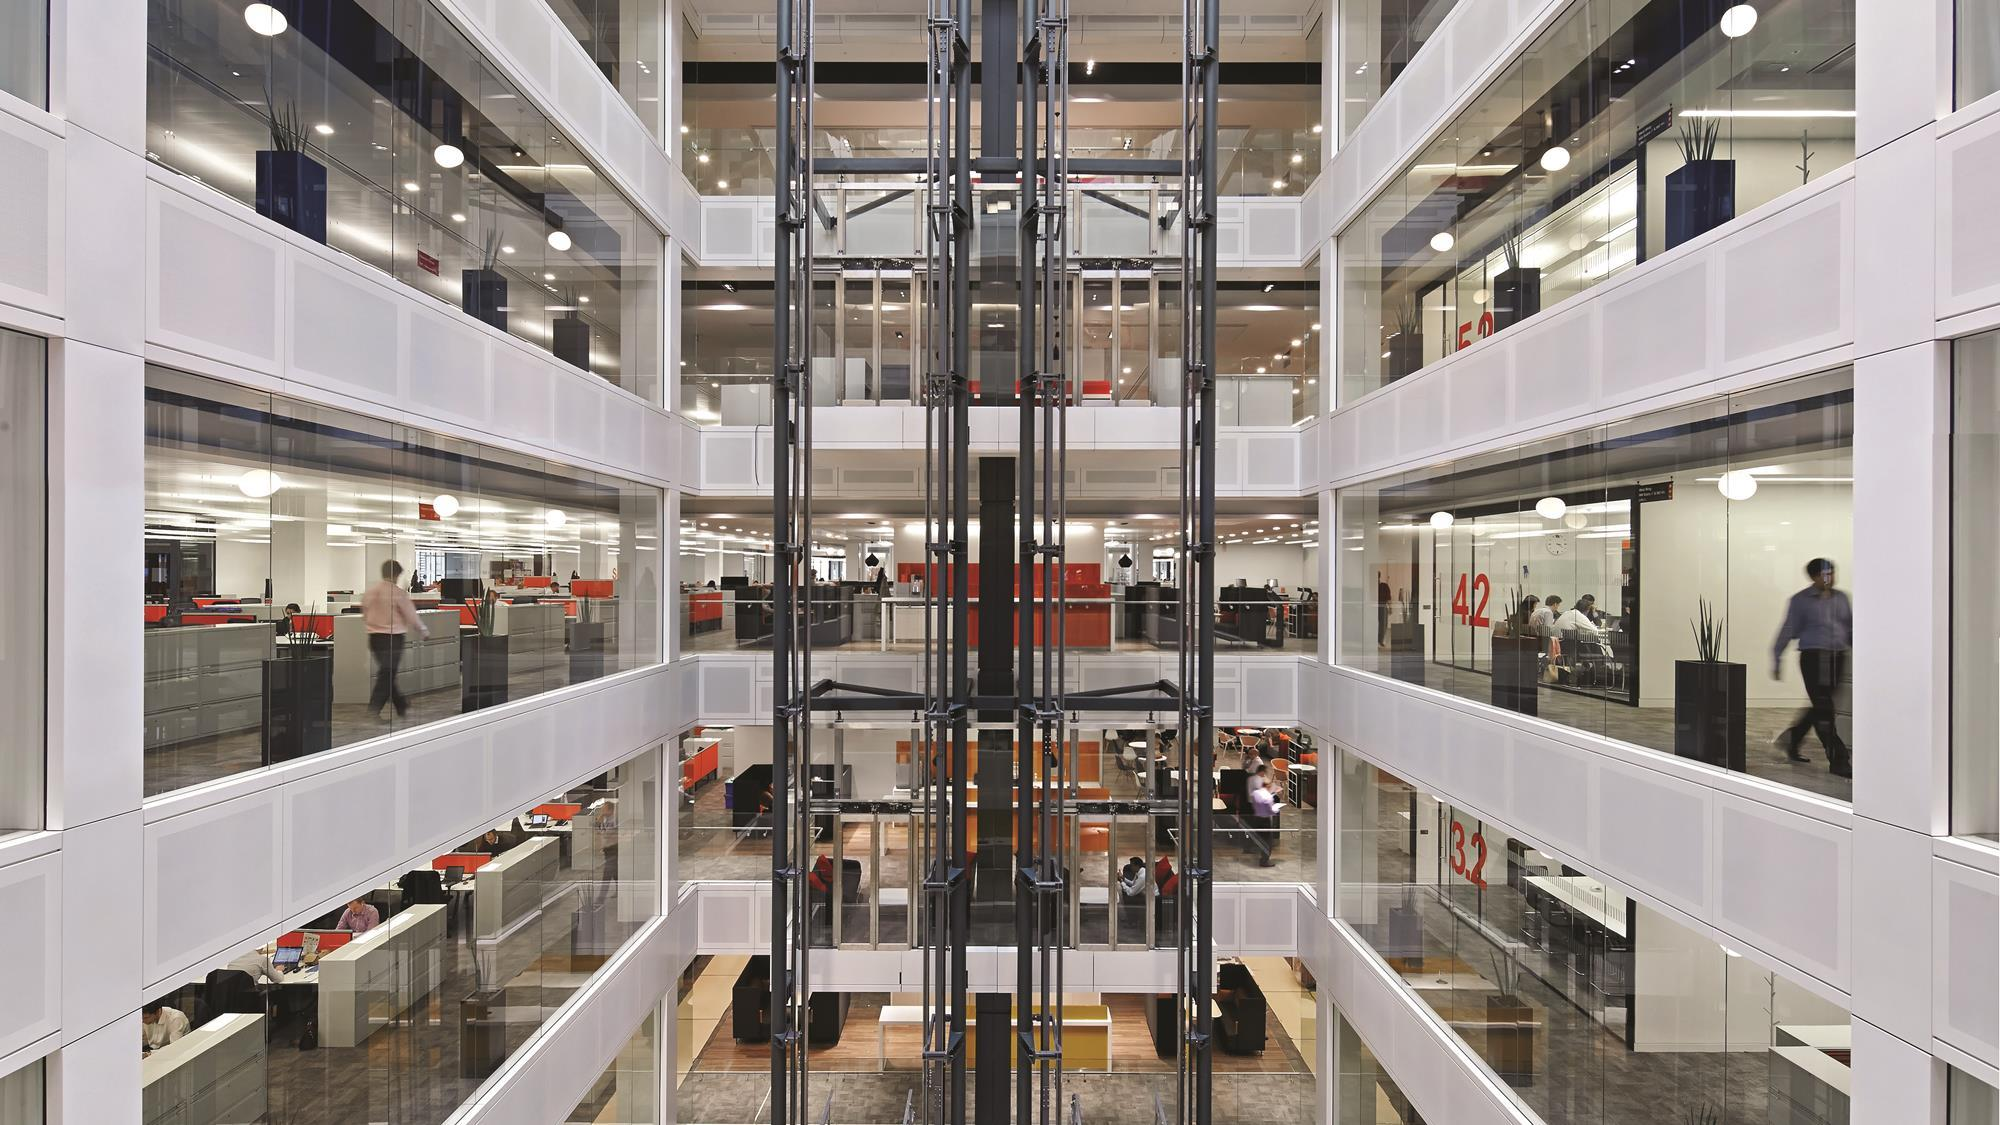 pwc london office. PwC\u0027s London Office: Highest BREEAM-rated Building Ever | Features  Building Pwc London Office O